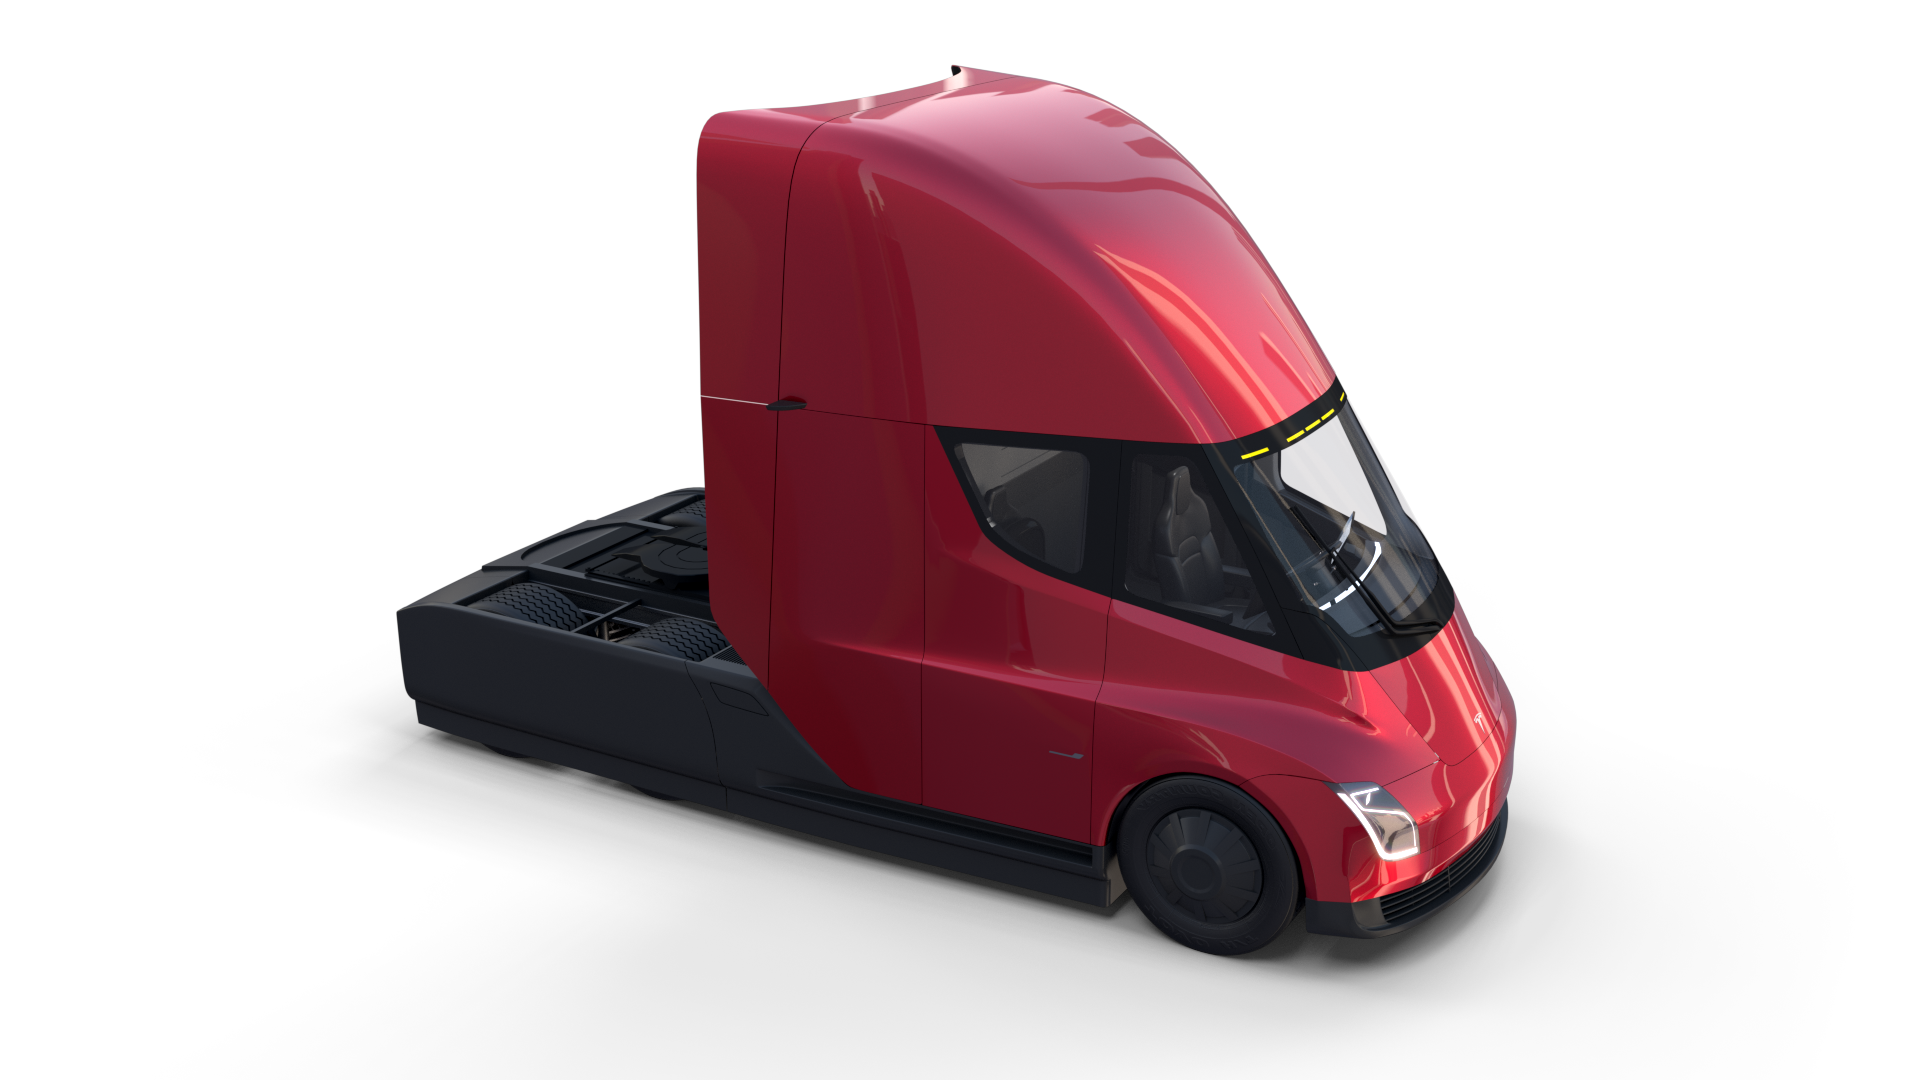 Tesla Truck With Chassis Interior And Trailer Red Ad Chassis Truck Tesla Red Tesla Semi Truck Semi Trucks Trucks